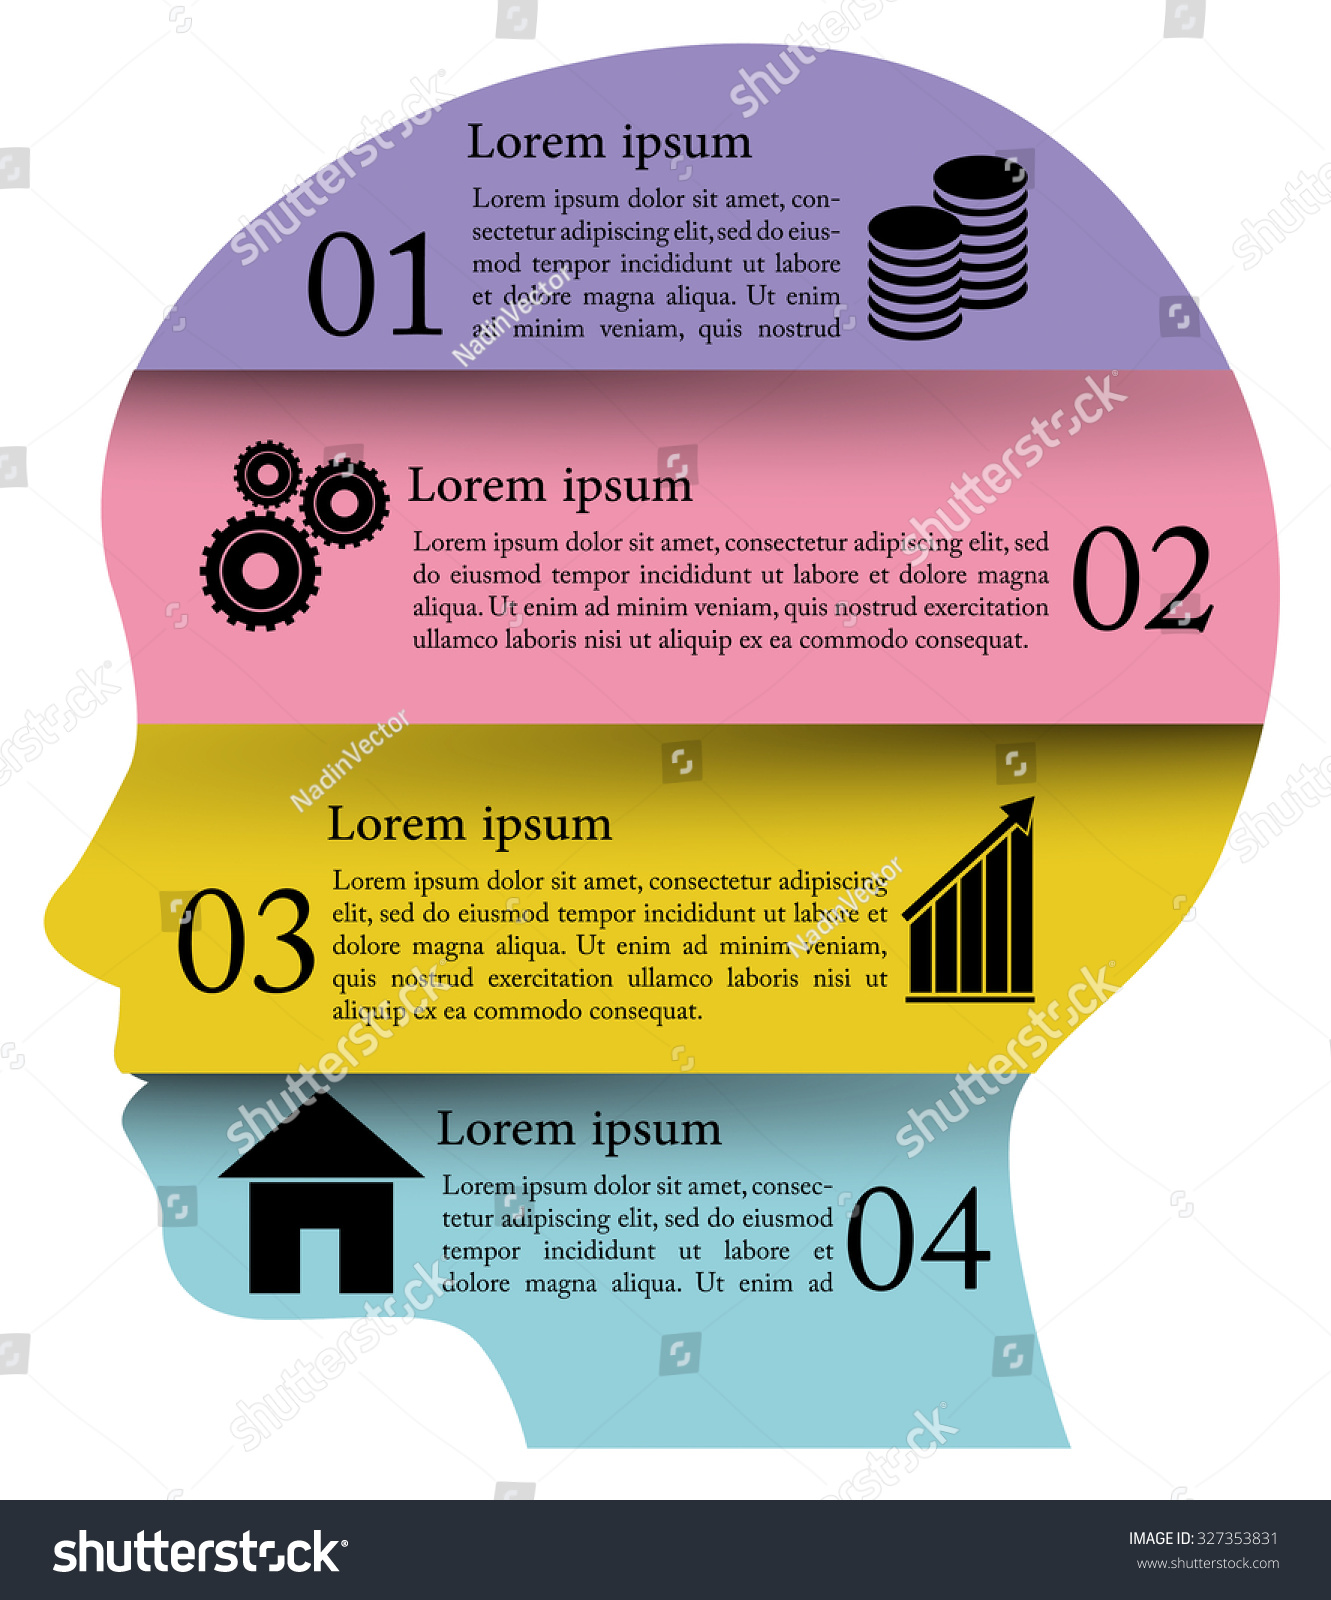 hight resolution of infographic vector human face cycle brainstorming diagram creativity generating ideas minds flow thinking imagination and inspiration concept